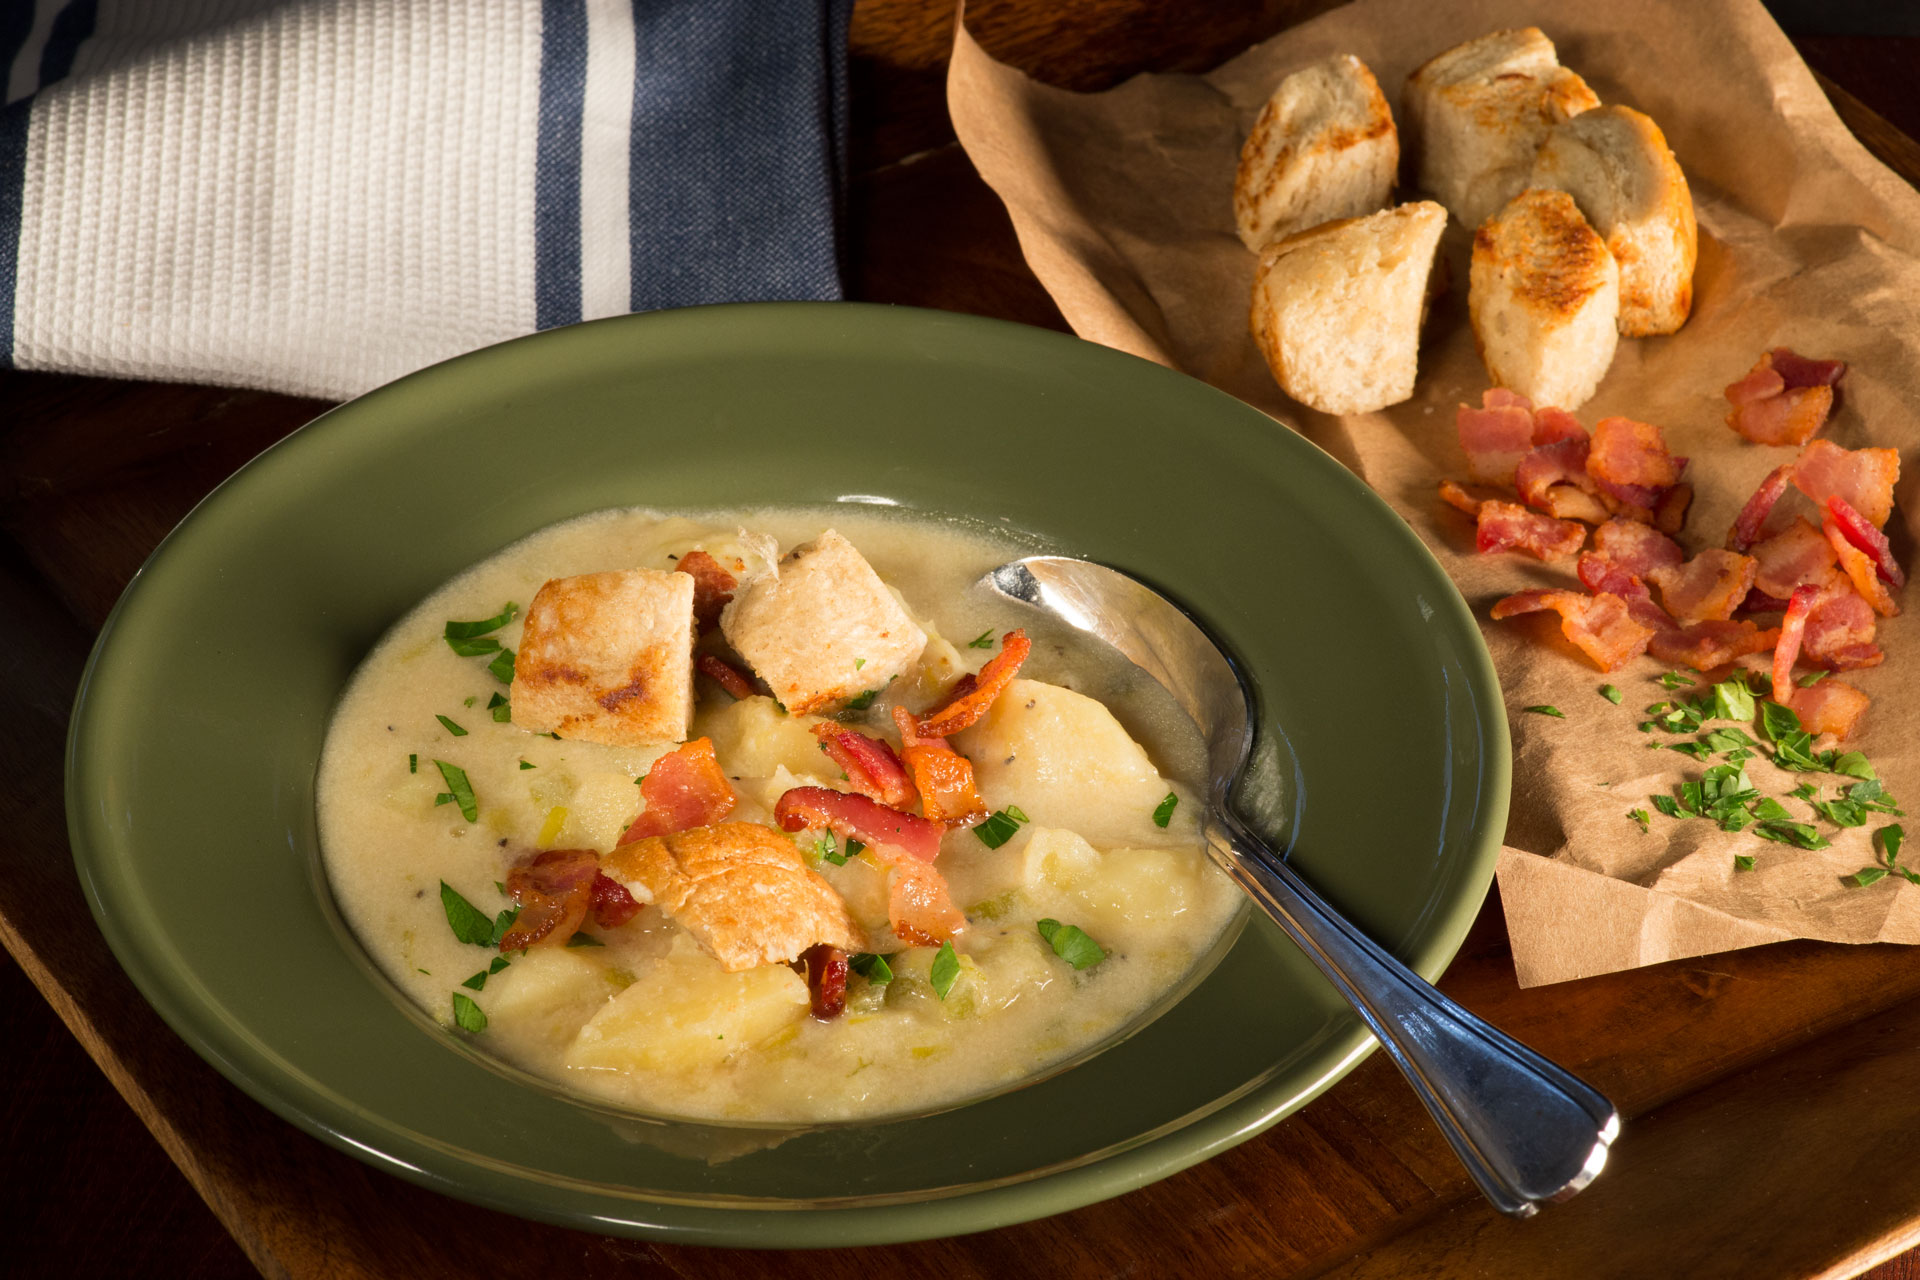 Potato Soup with Cheese and Irish Ale is just the thing to help you cozy up at home and celebrate St. Patrick's Day, all while feeling you are at the neighborhood pub!